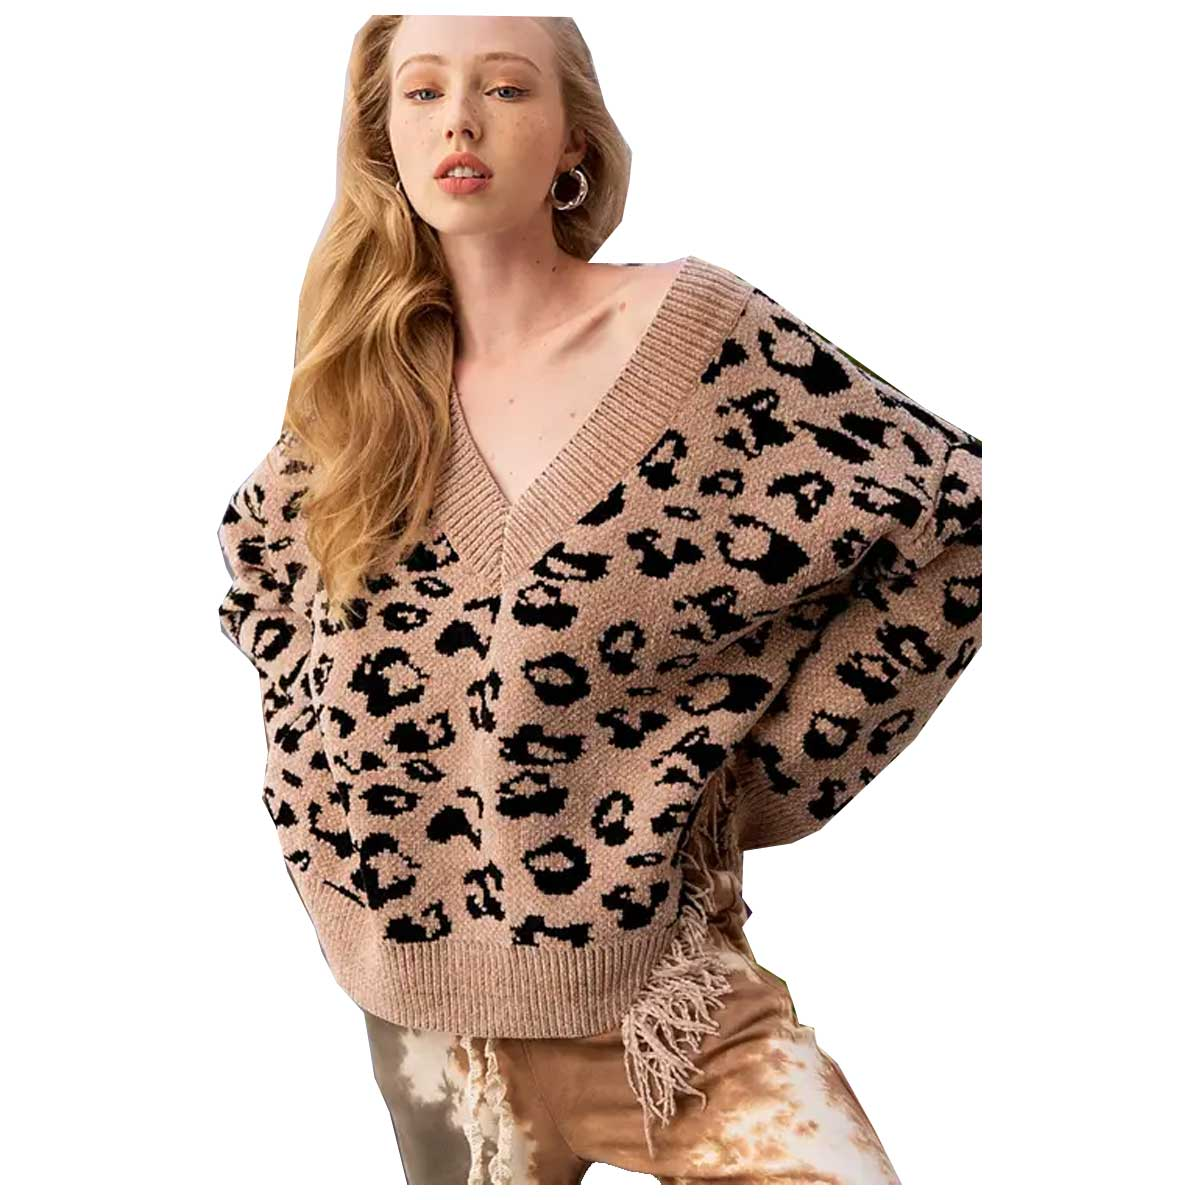 Pol Clothing V-Neck Sweater - Mocha Leopard